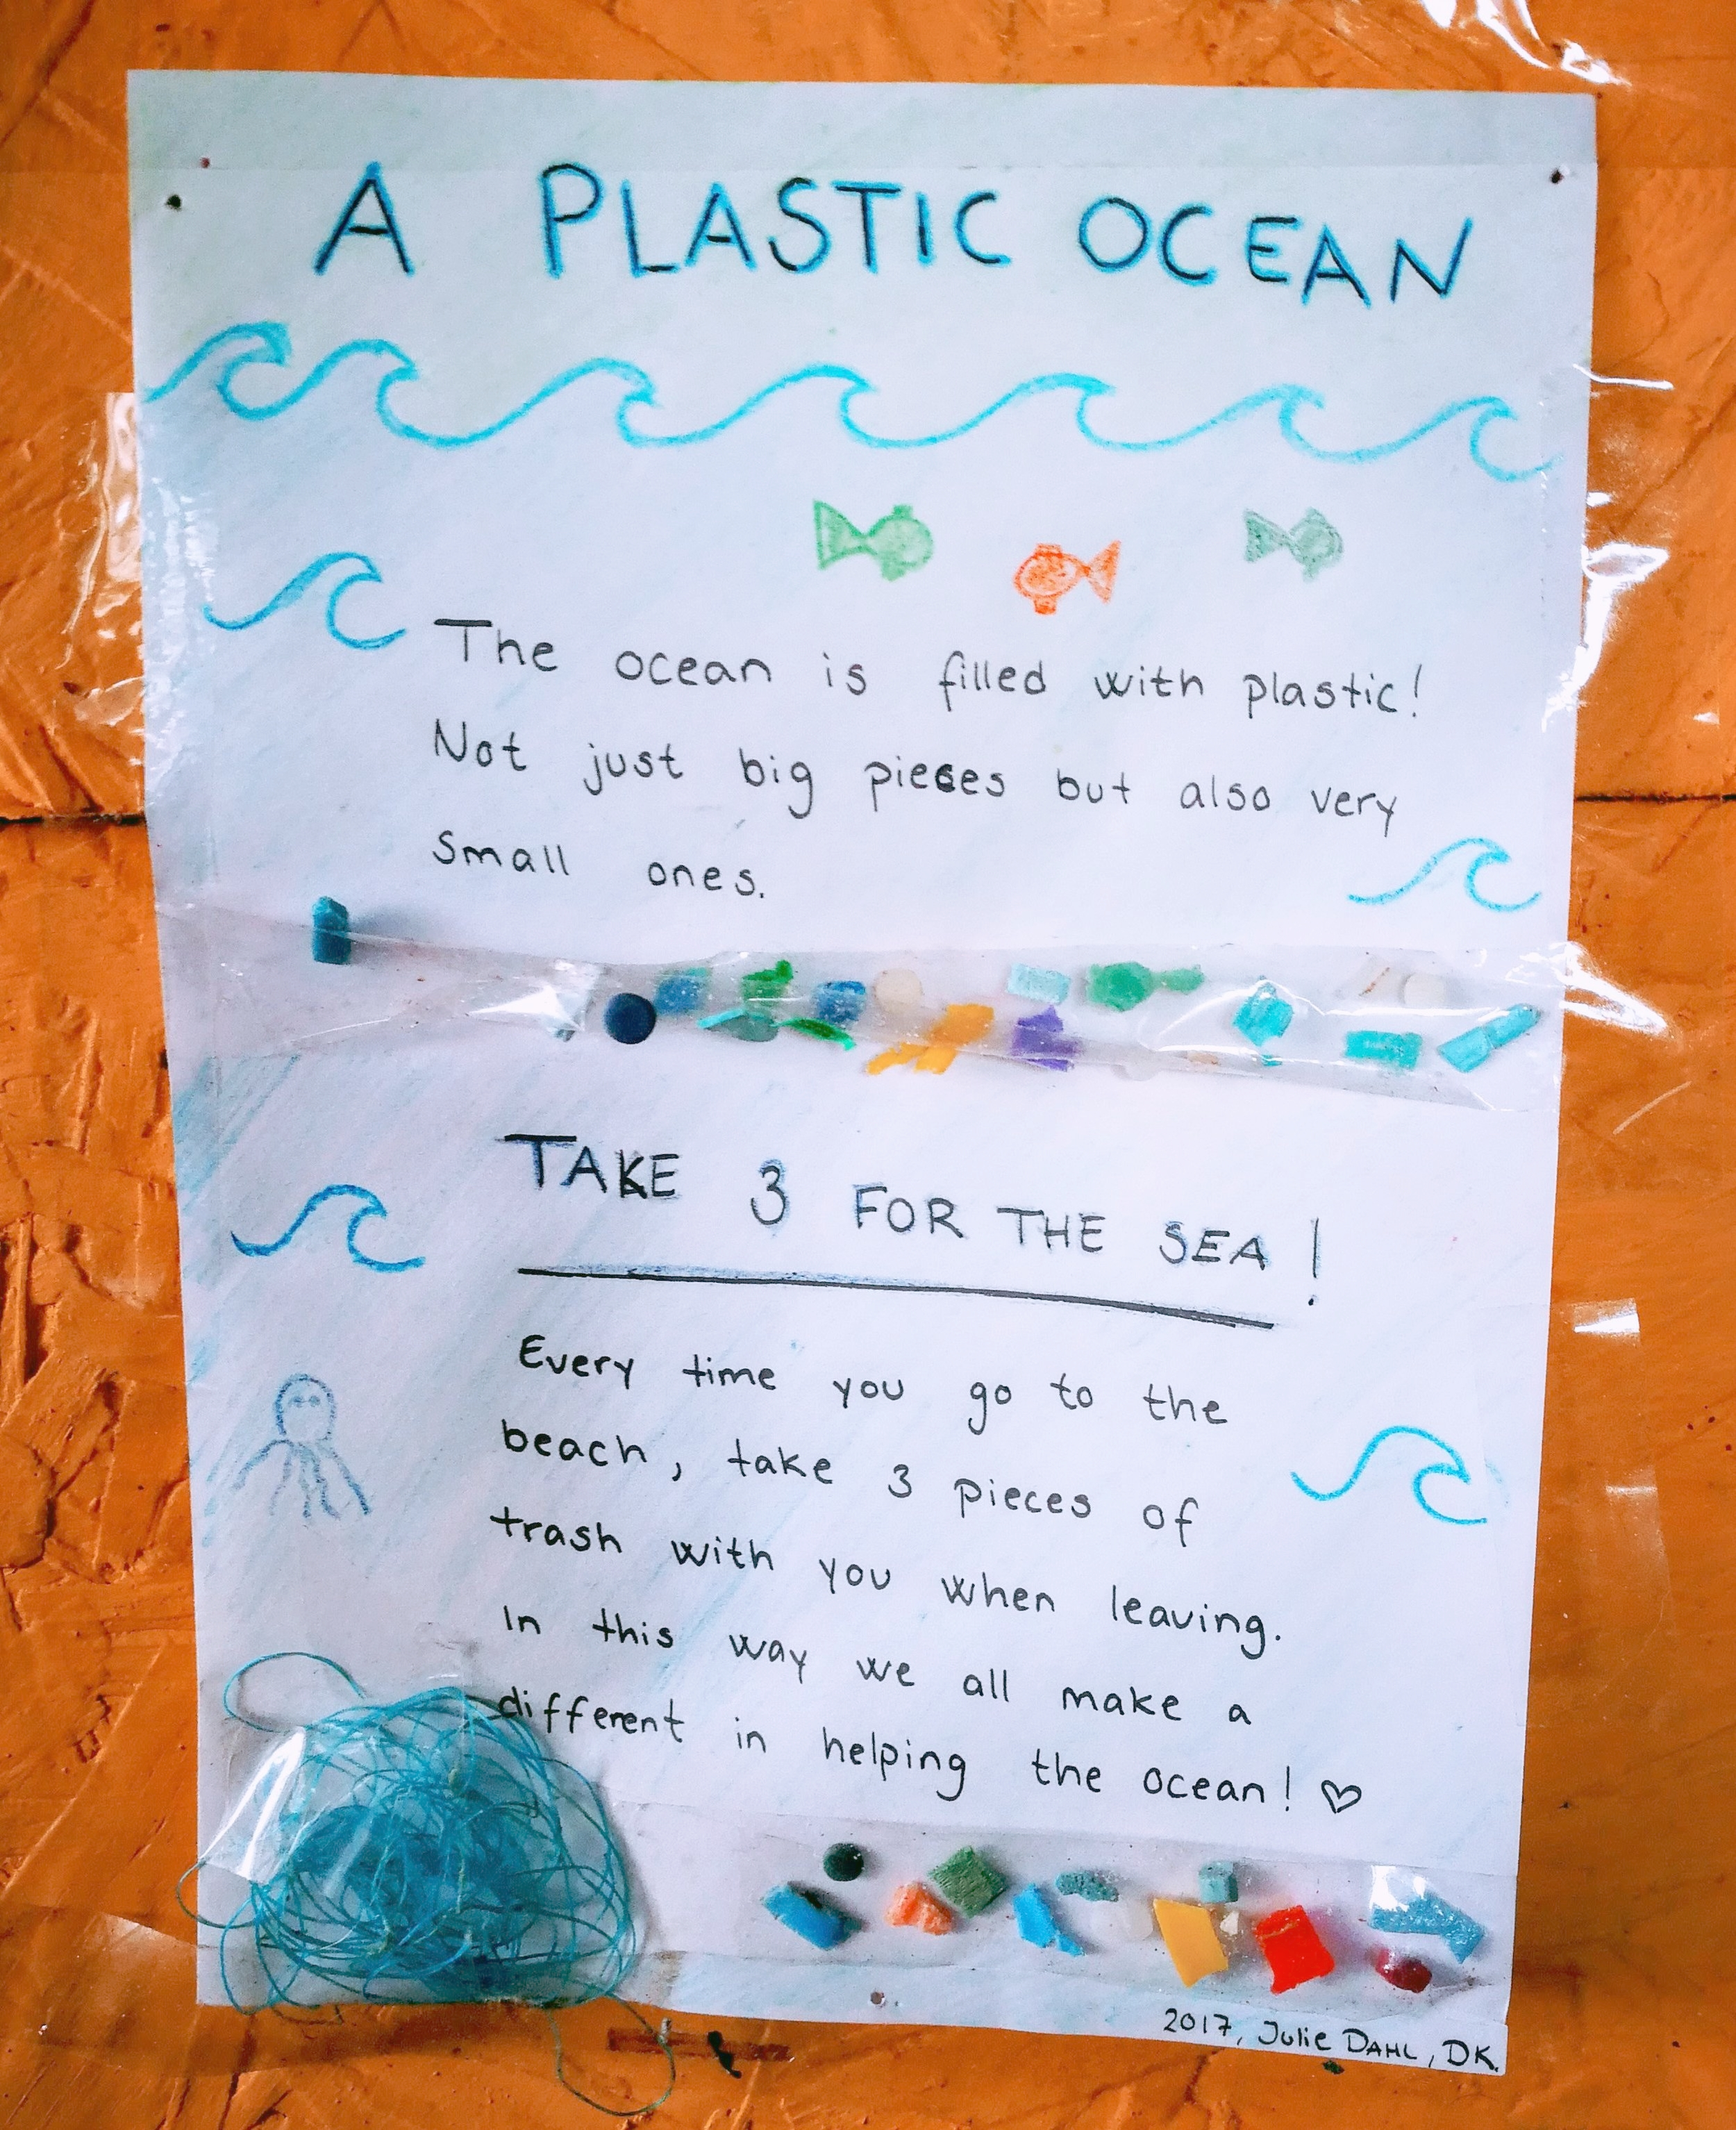 Take three for the sea awareness save the oceans Viejo Lobo hostel cabo polonio